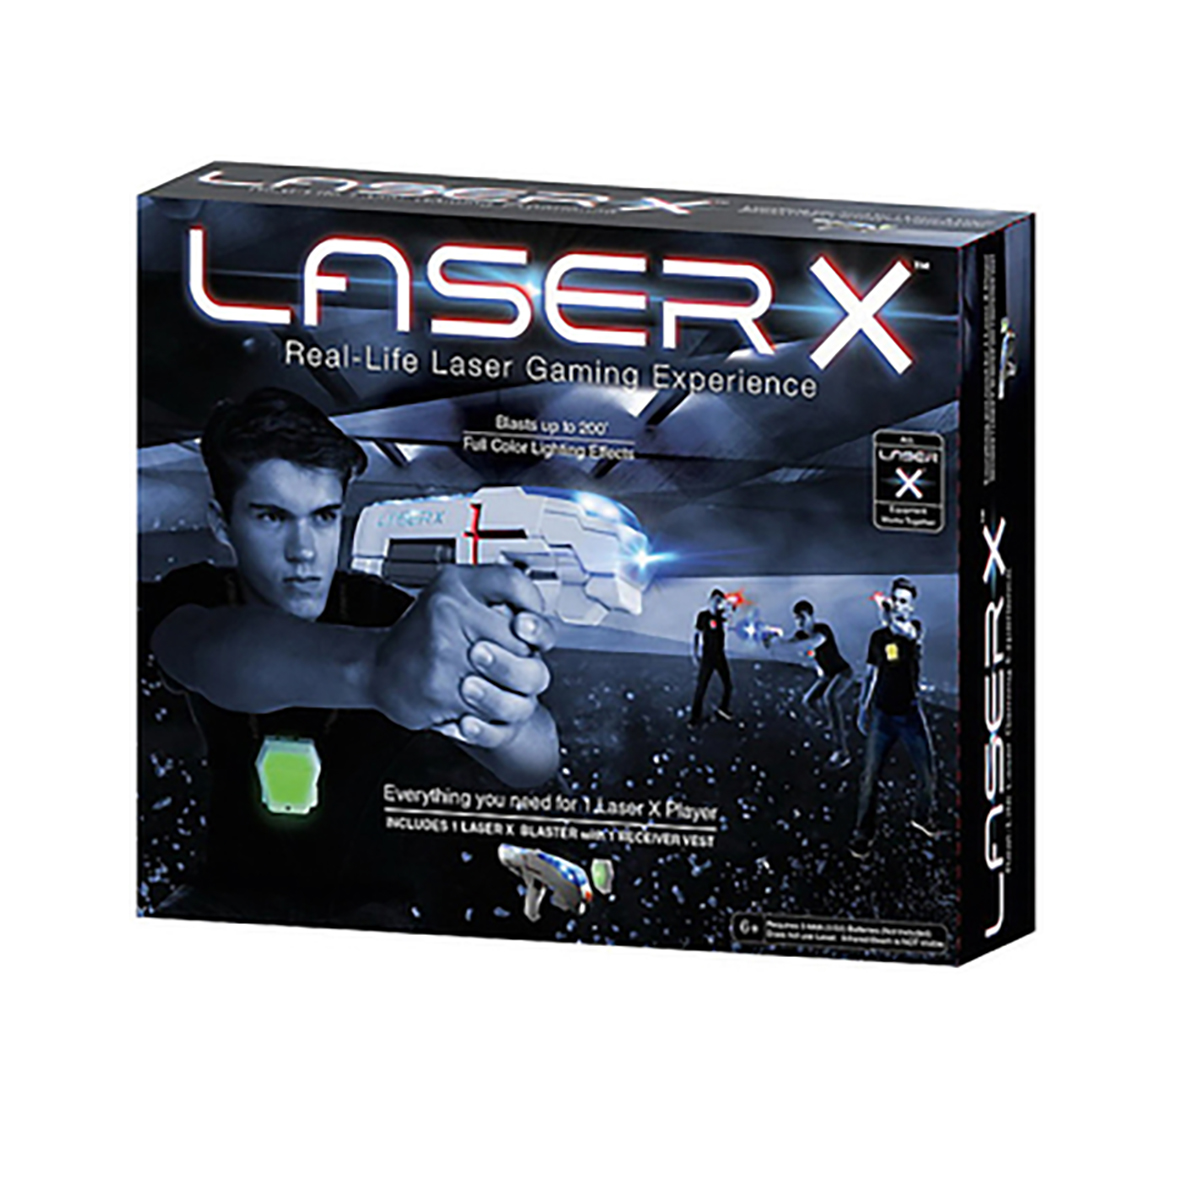 LASER X Toy Guns 8335486 for boys Arms Baby boy Kids Games Toys Outdoor Fun & Sports factory price mini 7 watt rgb laser projector for disco dancing hall club outdoor ad graphics